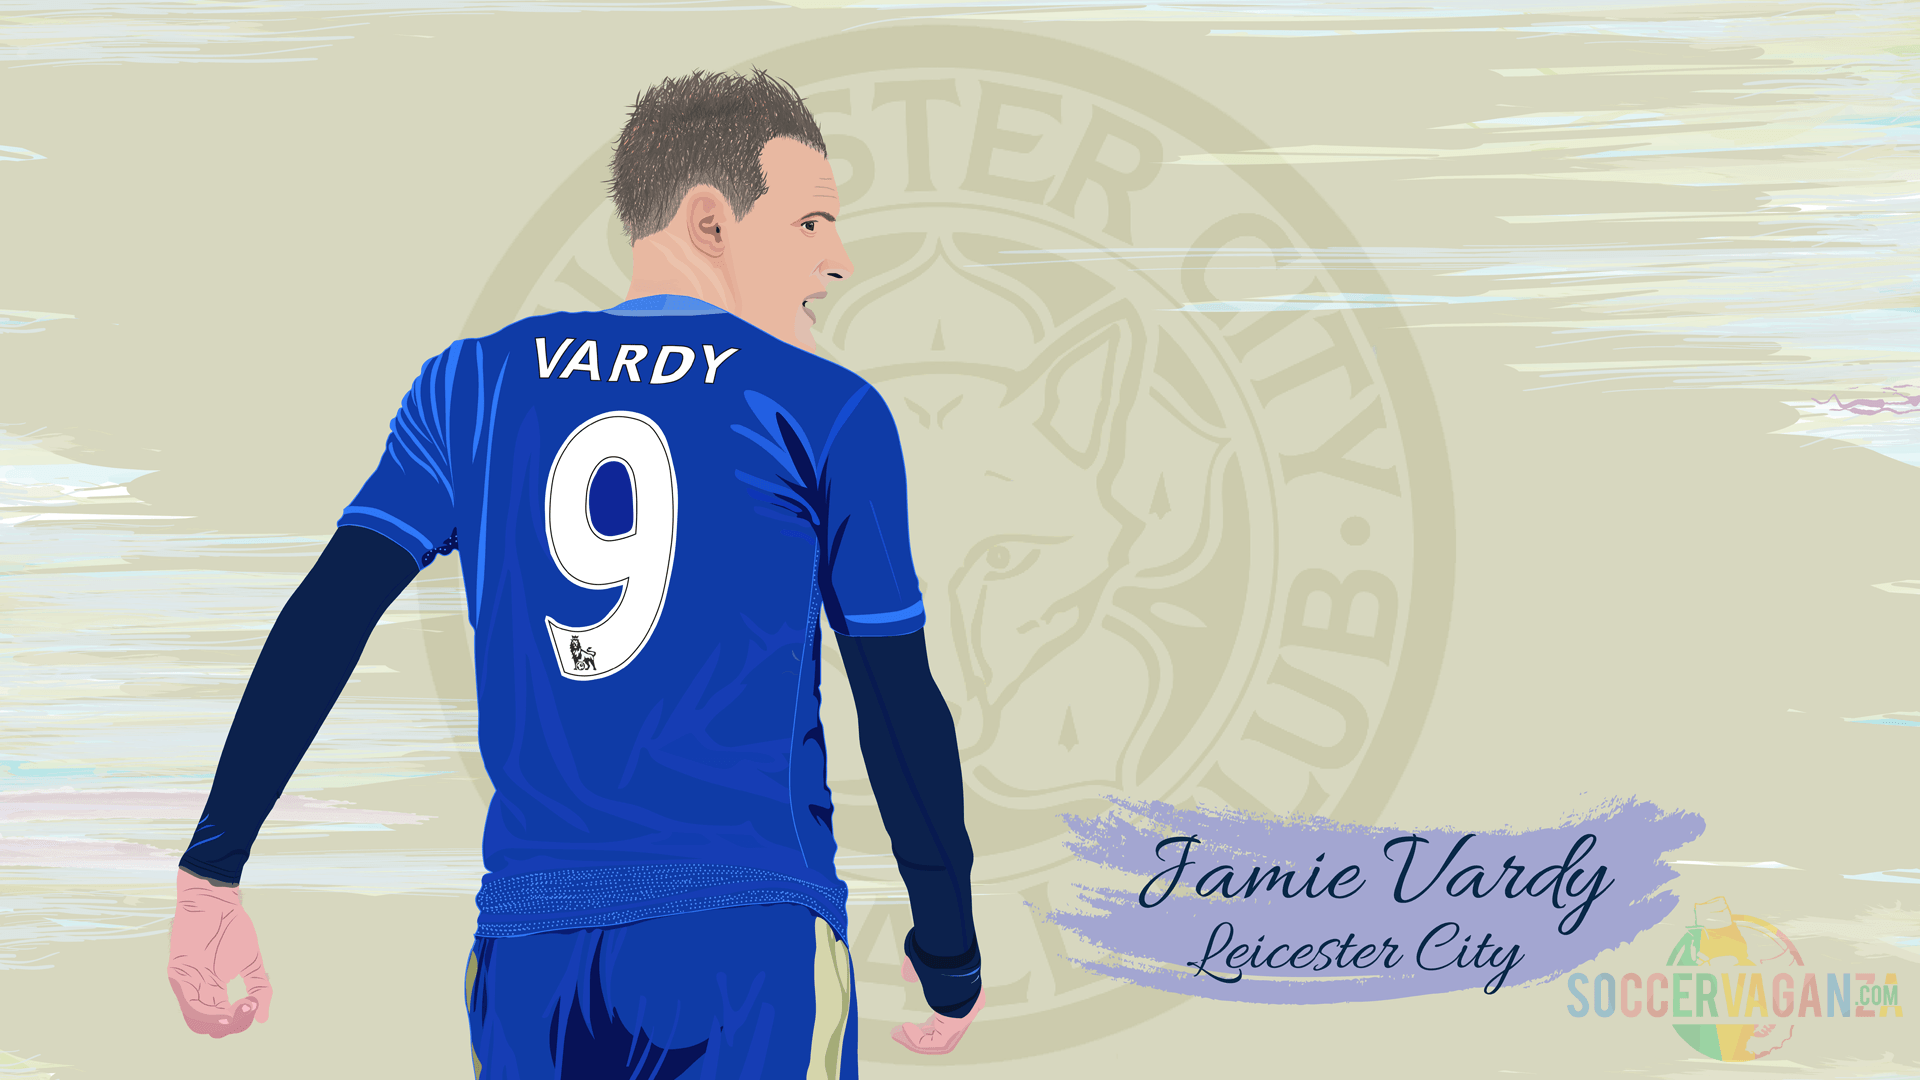 Jamie Vardy by SoccerVaganza on DeviantArt